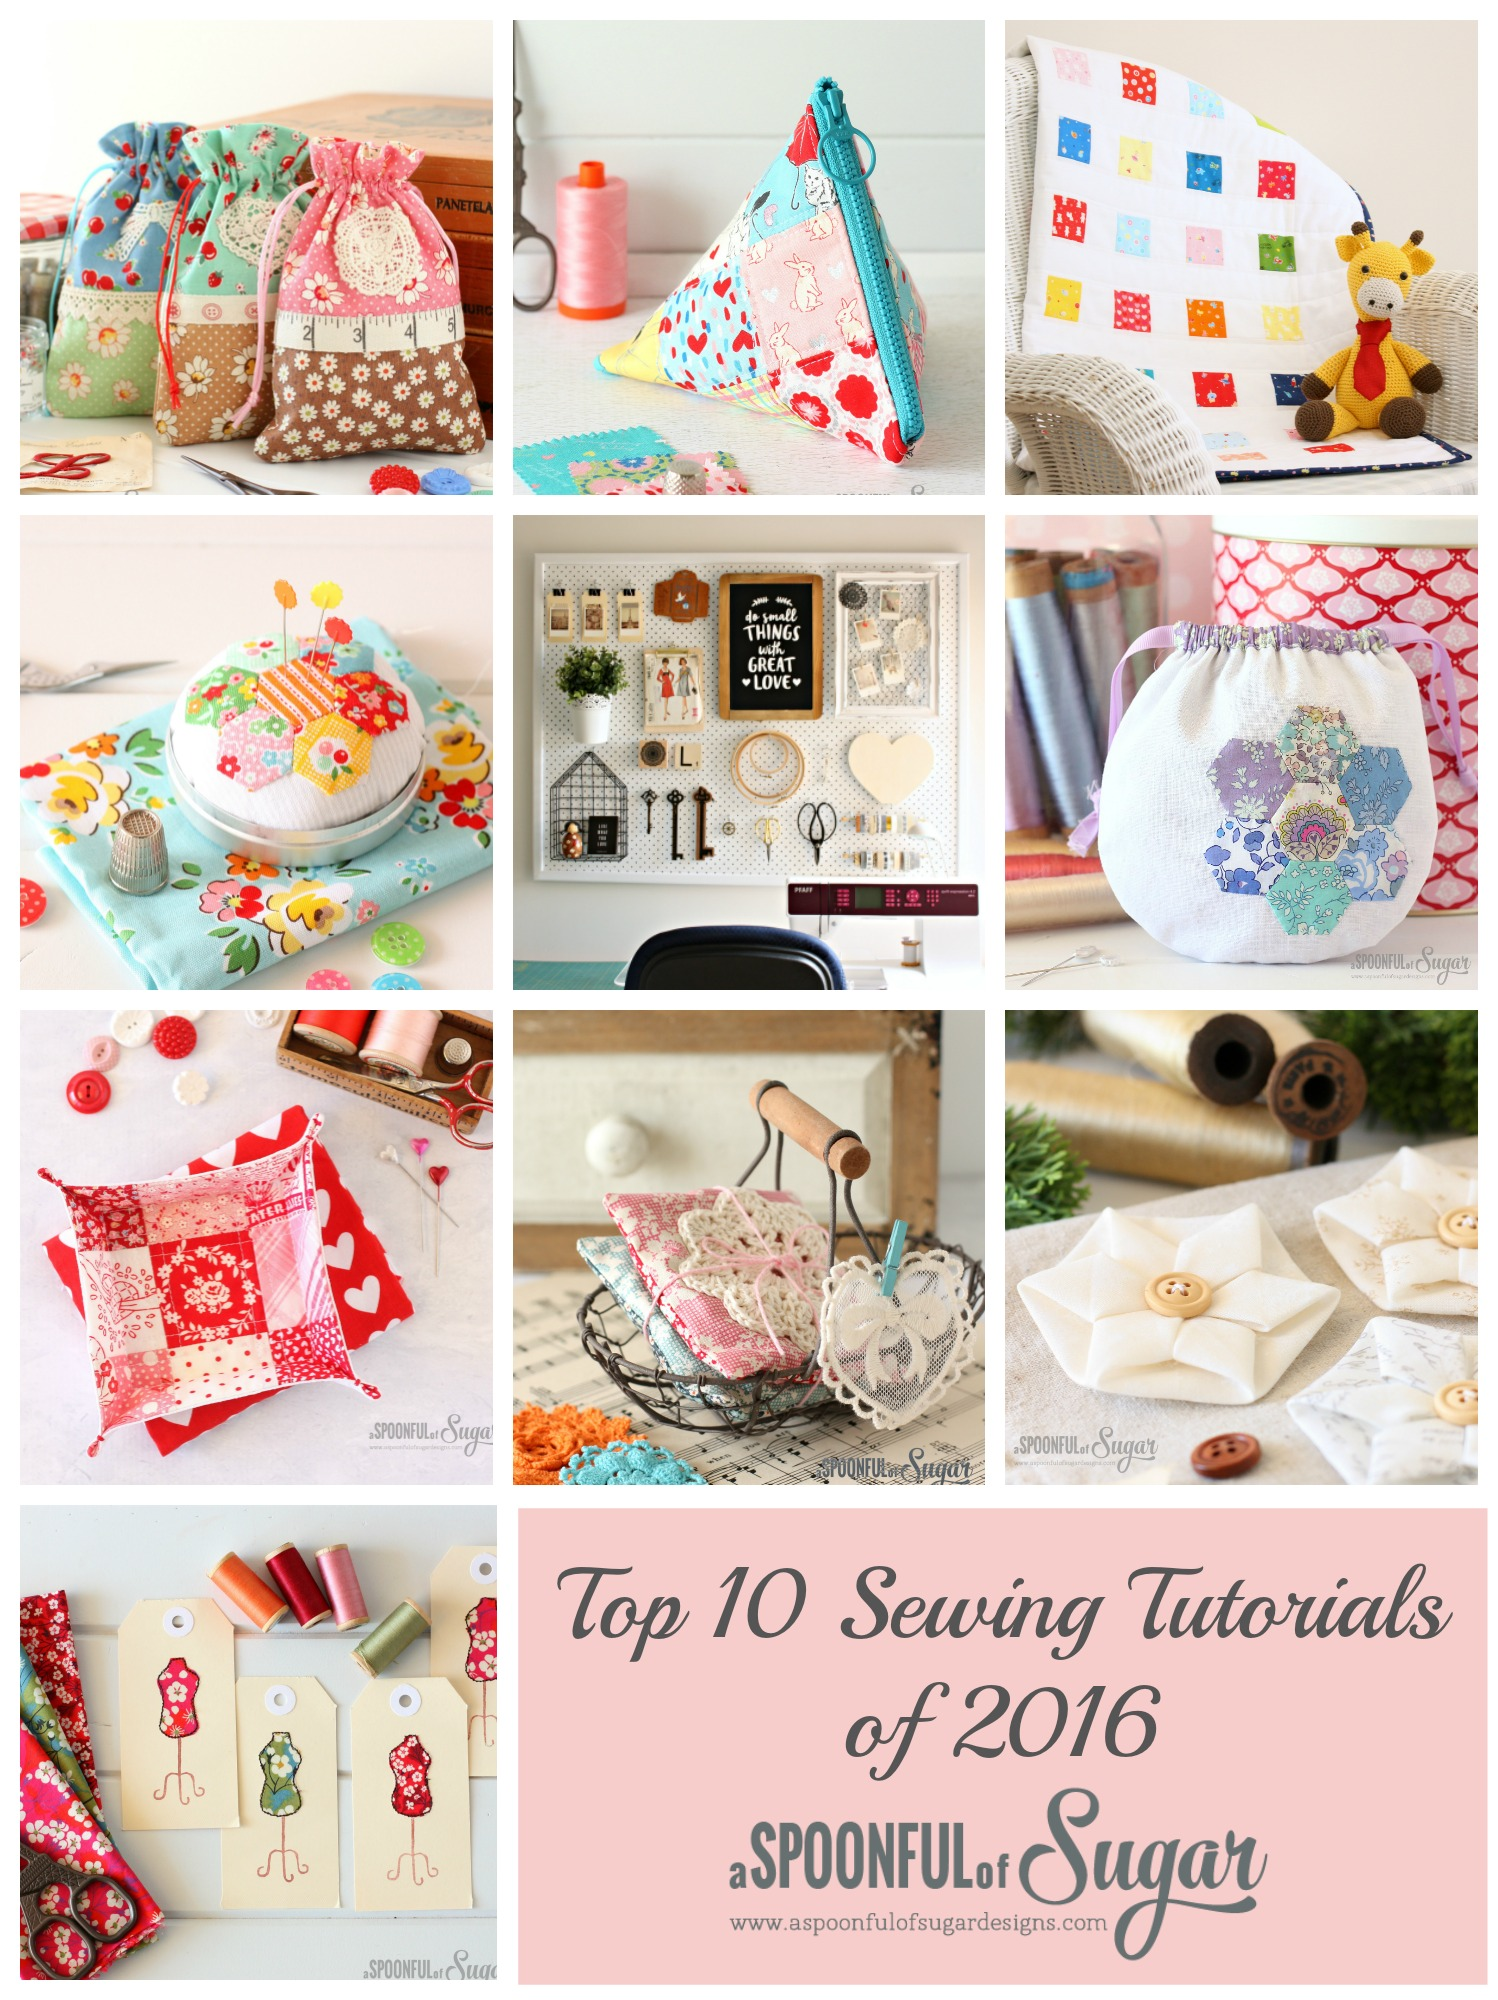 Top Sewing Tutorials from 2016 - A Spoonful of Sugar - www.aspoonfulofsugardesigns.com